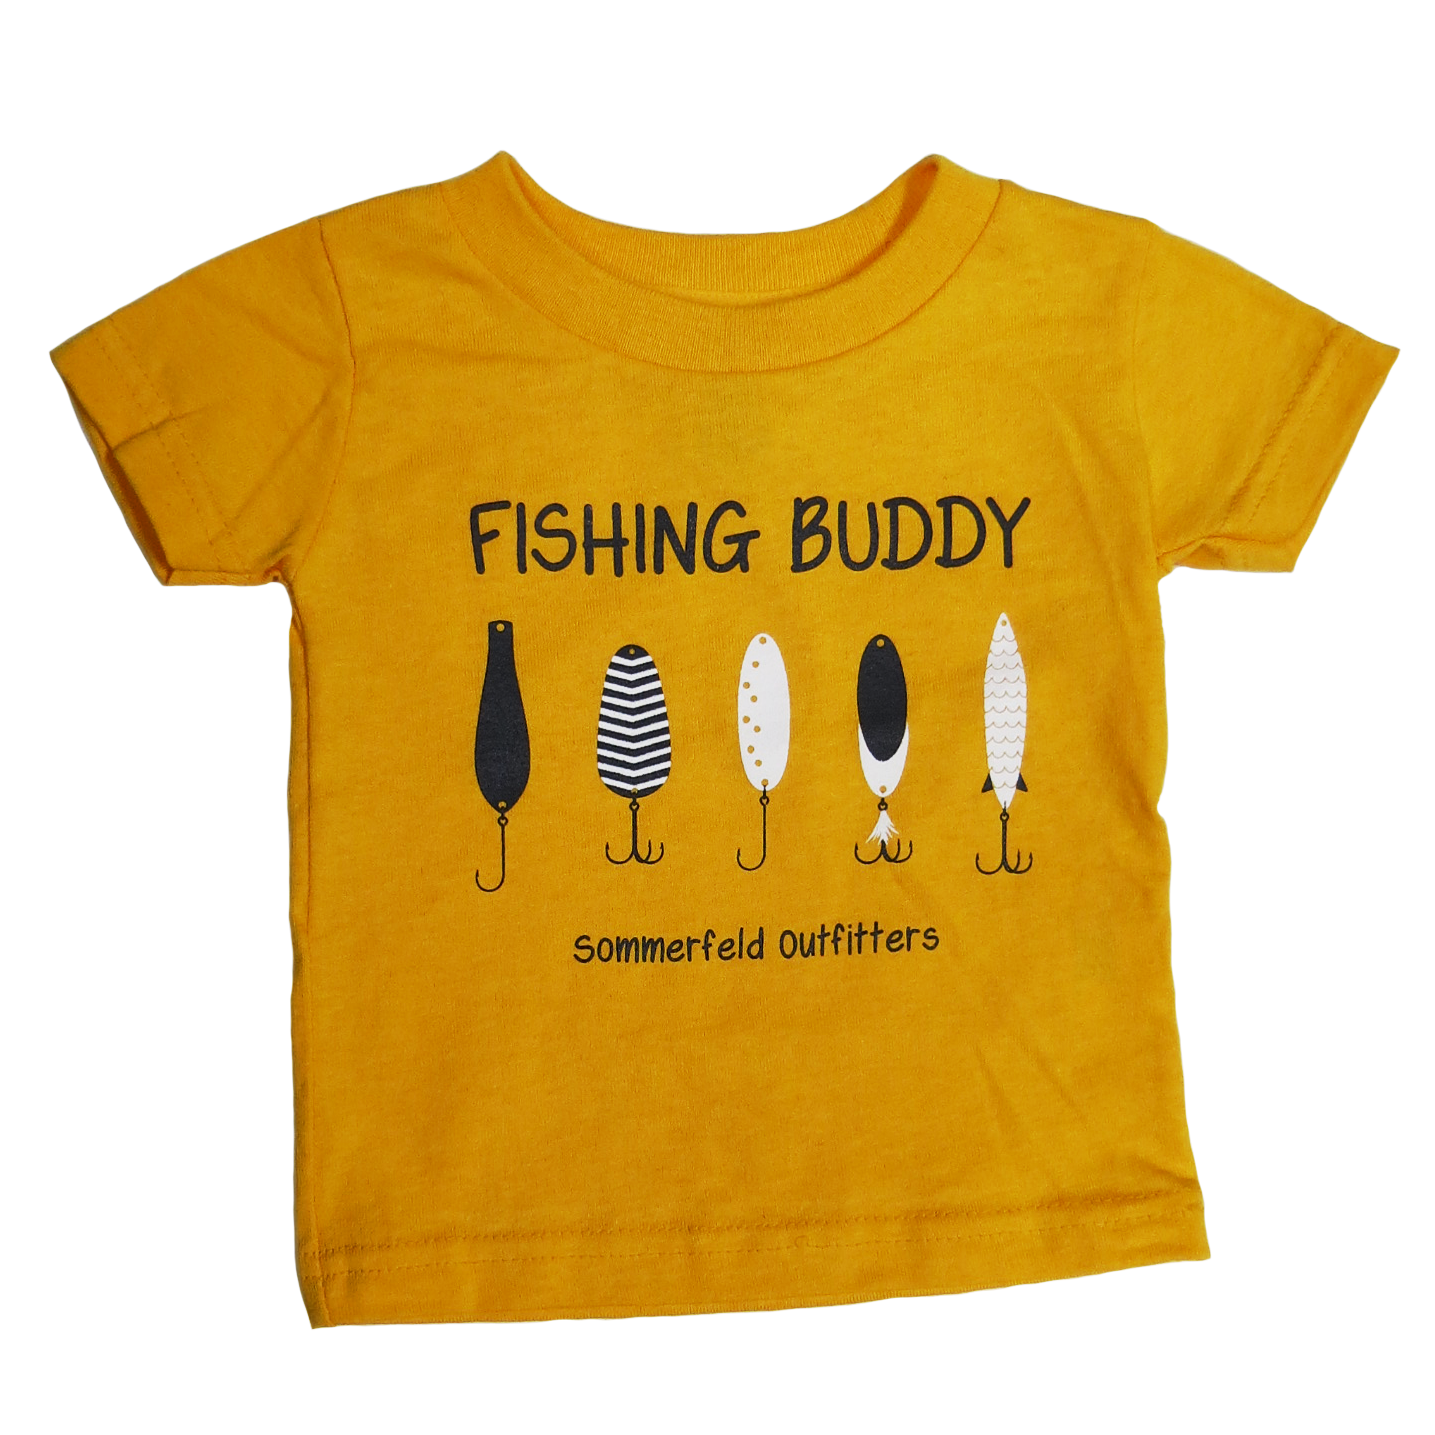 Sommerfeld Outfitters Fishing Buddy Gold Shirt